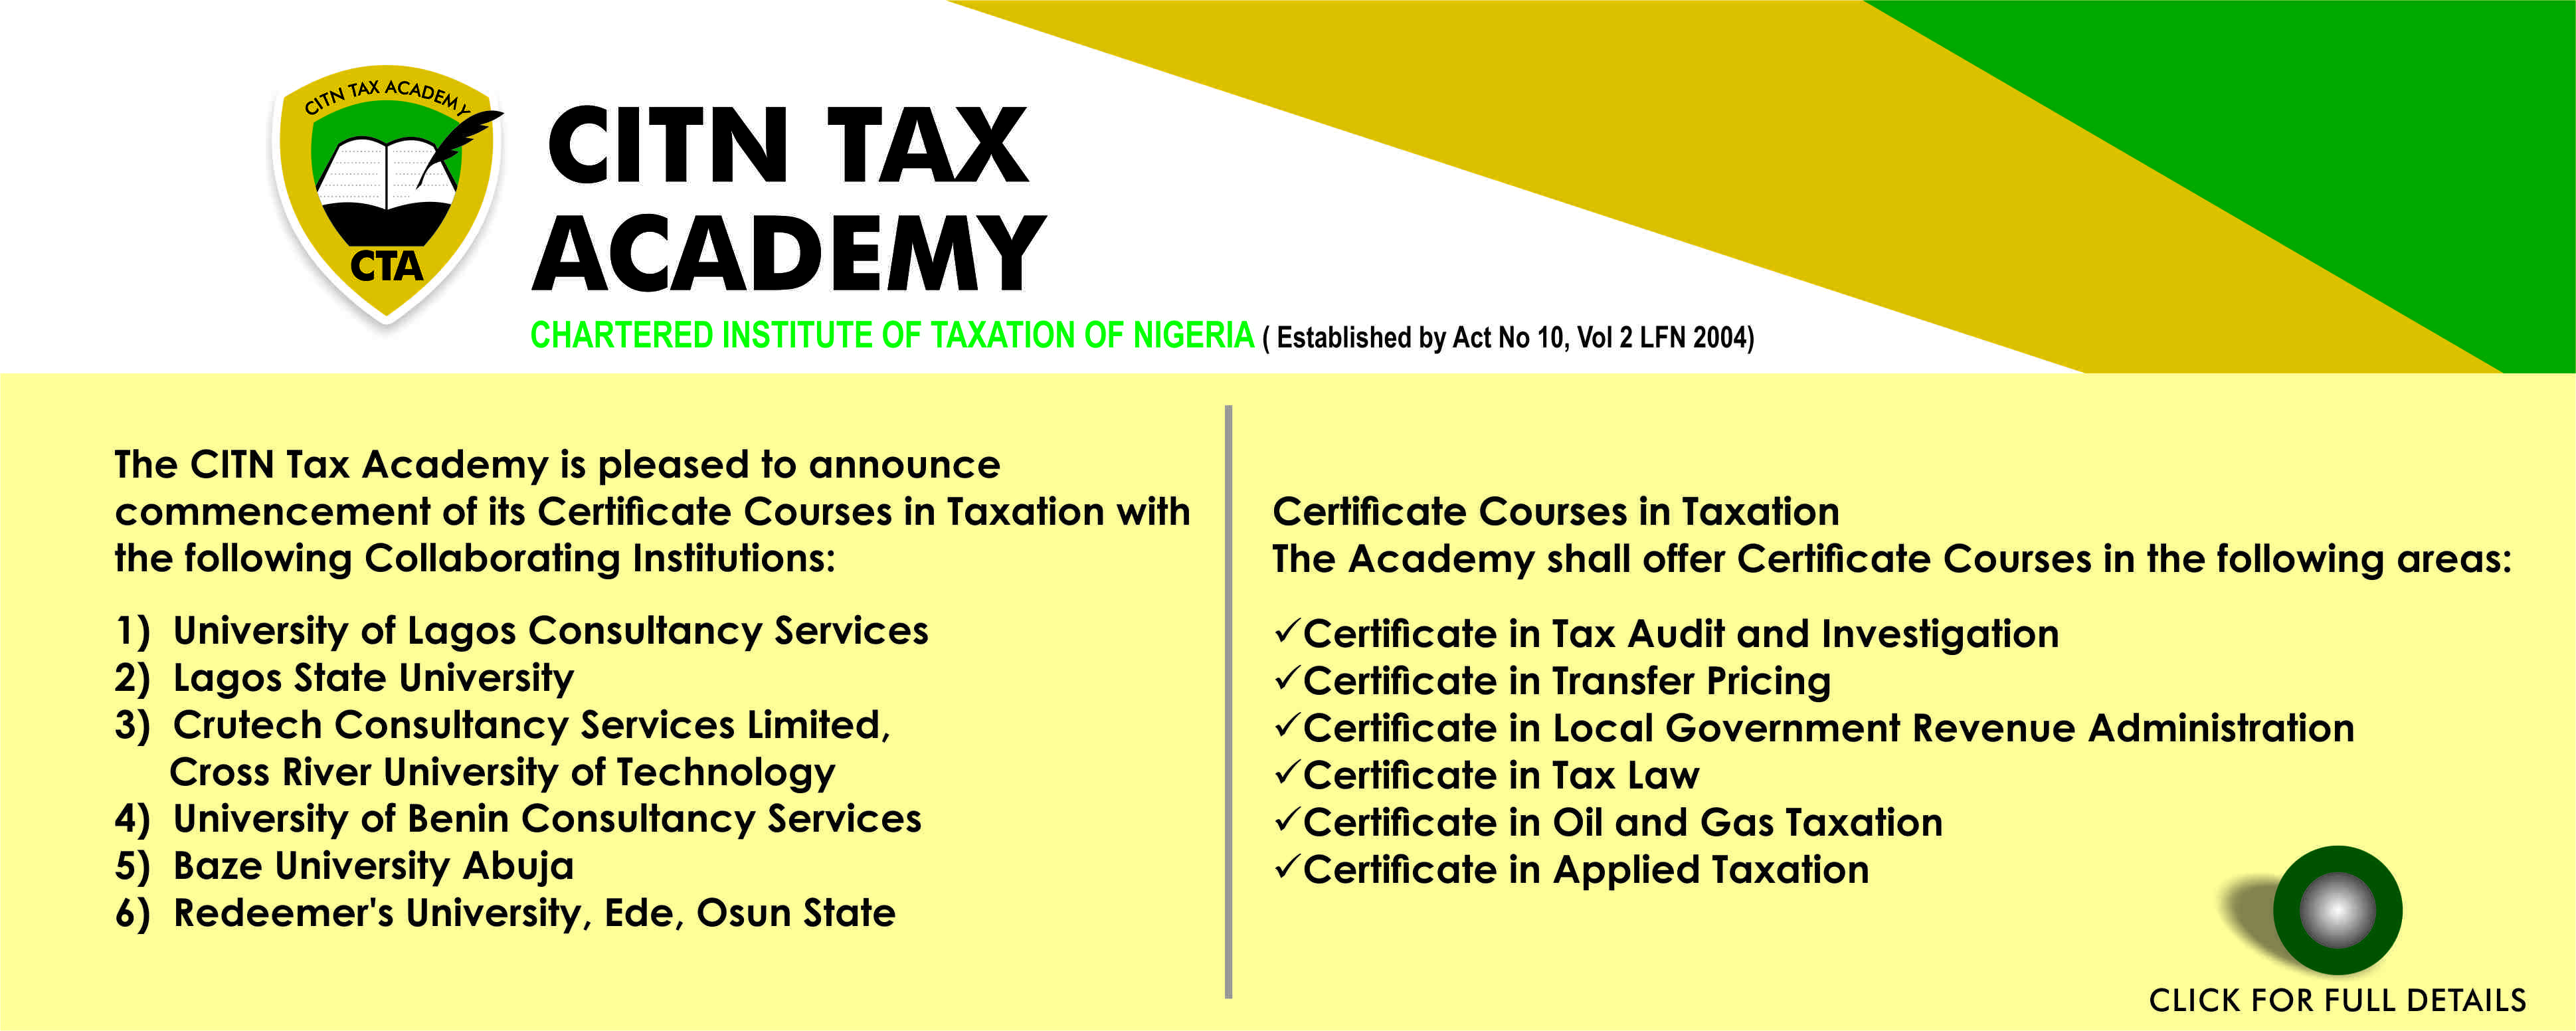 taxation in nigeria Impact of taxation  the impact of taxation on revenue generation in nigeria a study of federal capital territory and selected stat.